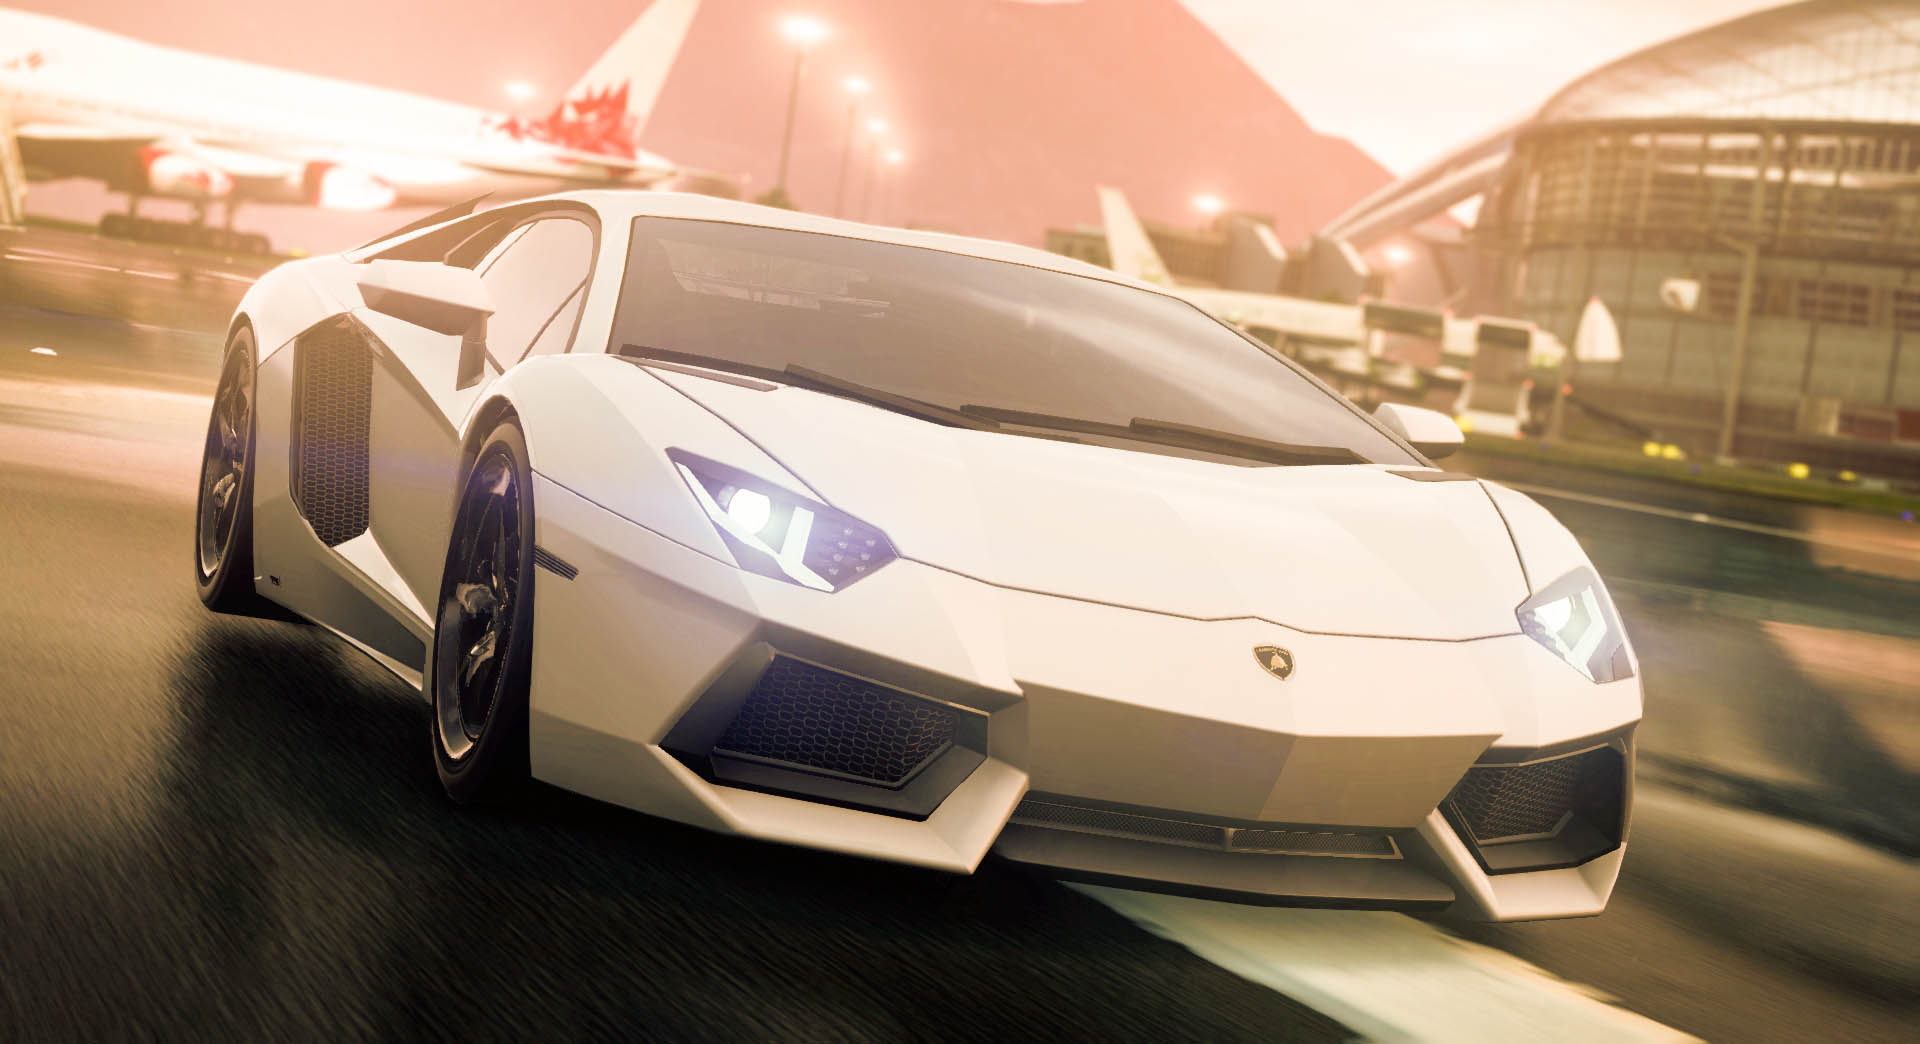 Need for speed most wanted wallpapers2 12.51.20 AM